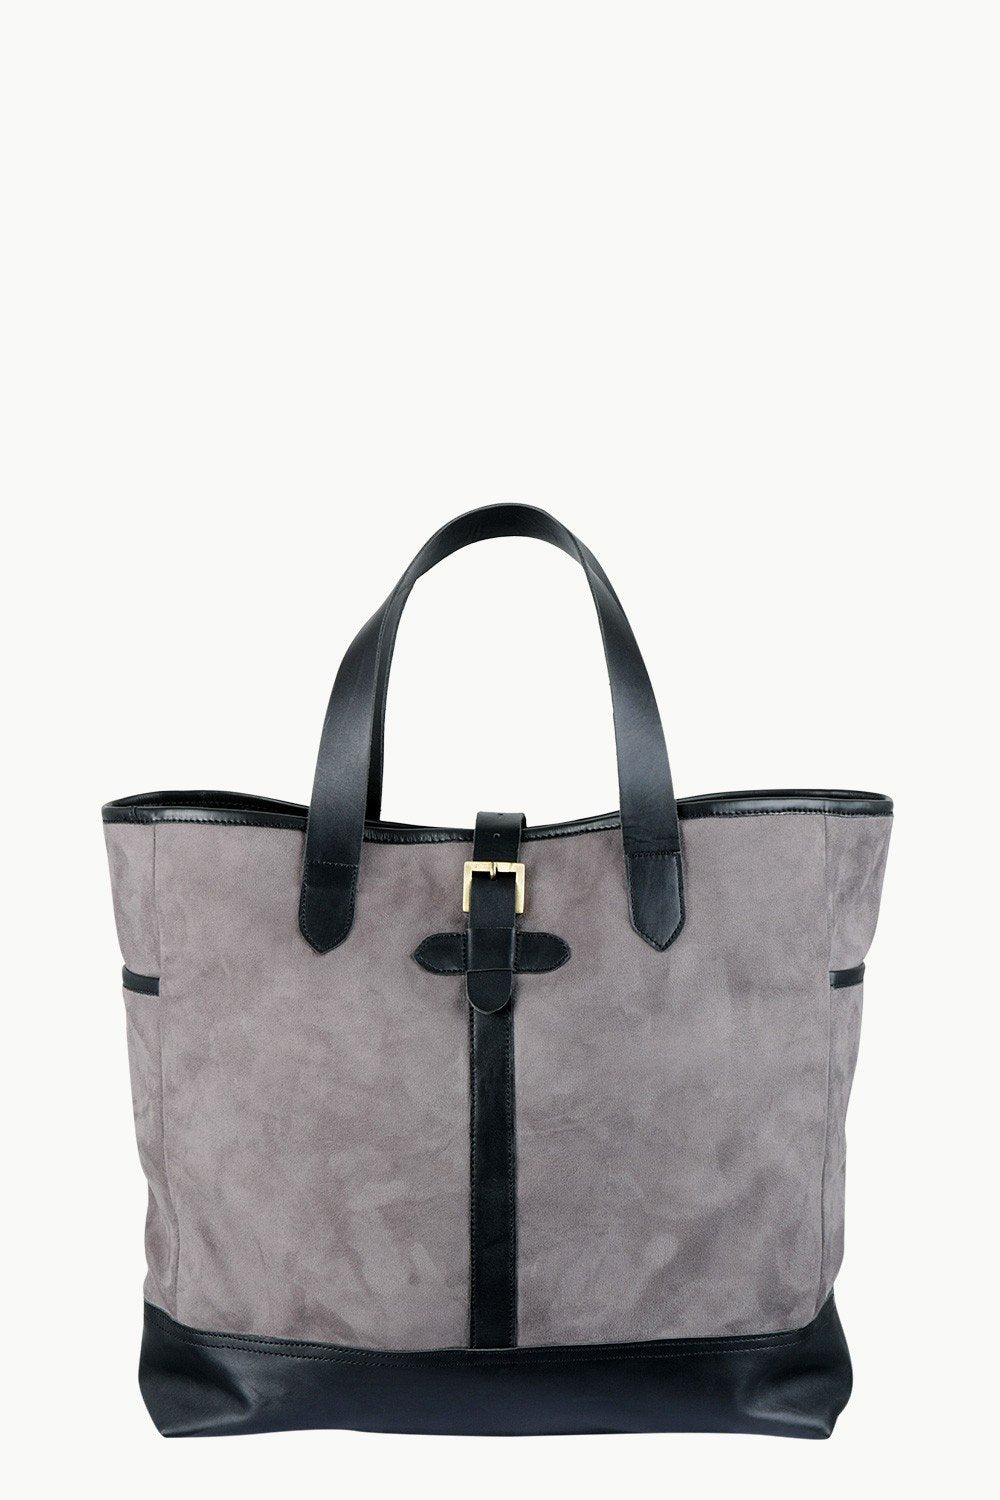 51ac51011 Buy Leather Tote Bags Online India- Fenix Toulouse Handball